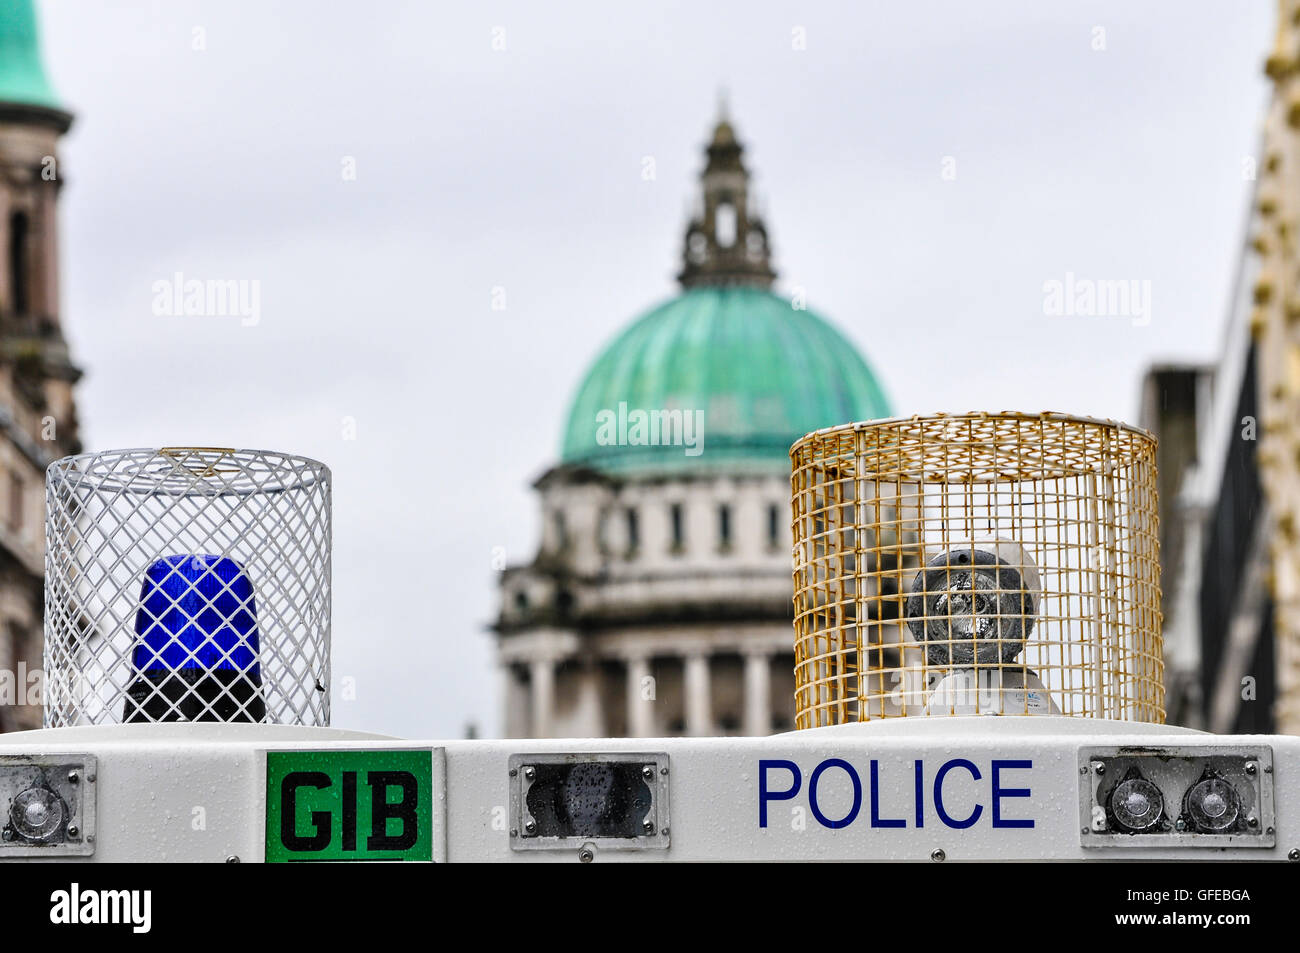 Belfast, Northern Ireland. 10 Aug 2014 - Police use armoured Landrovers to close off tbe main street in Belfast - Stock Image